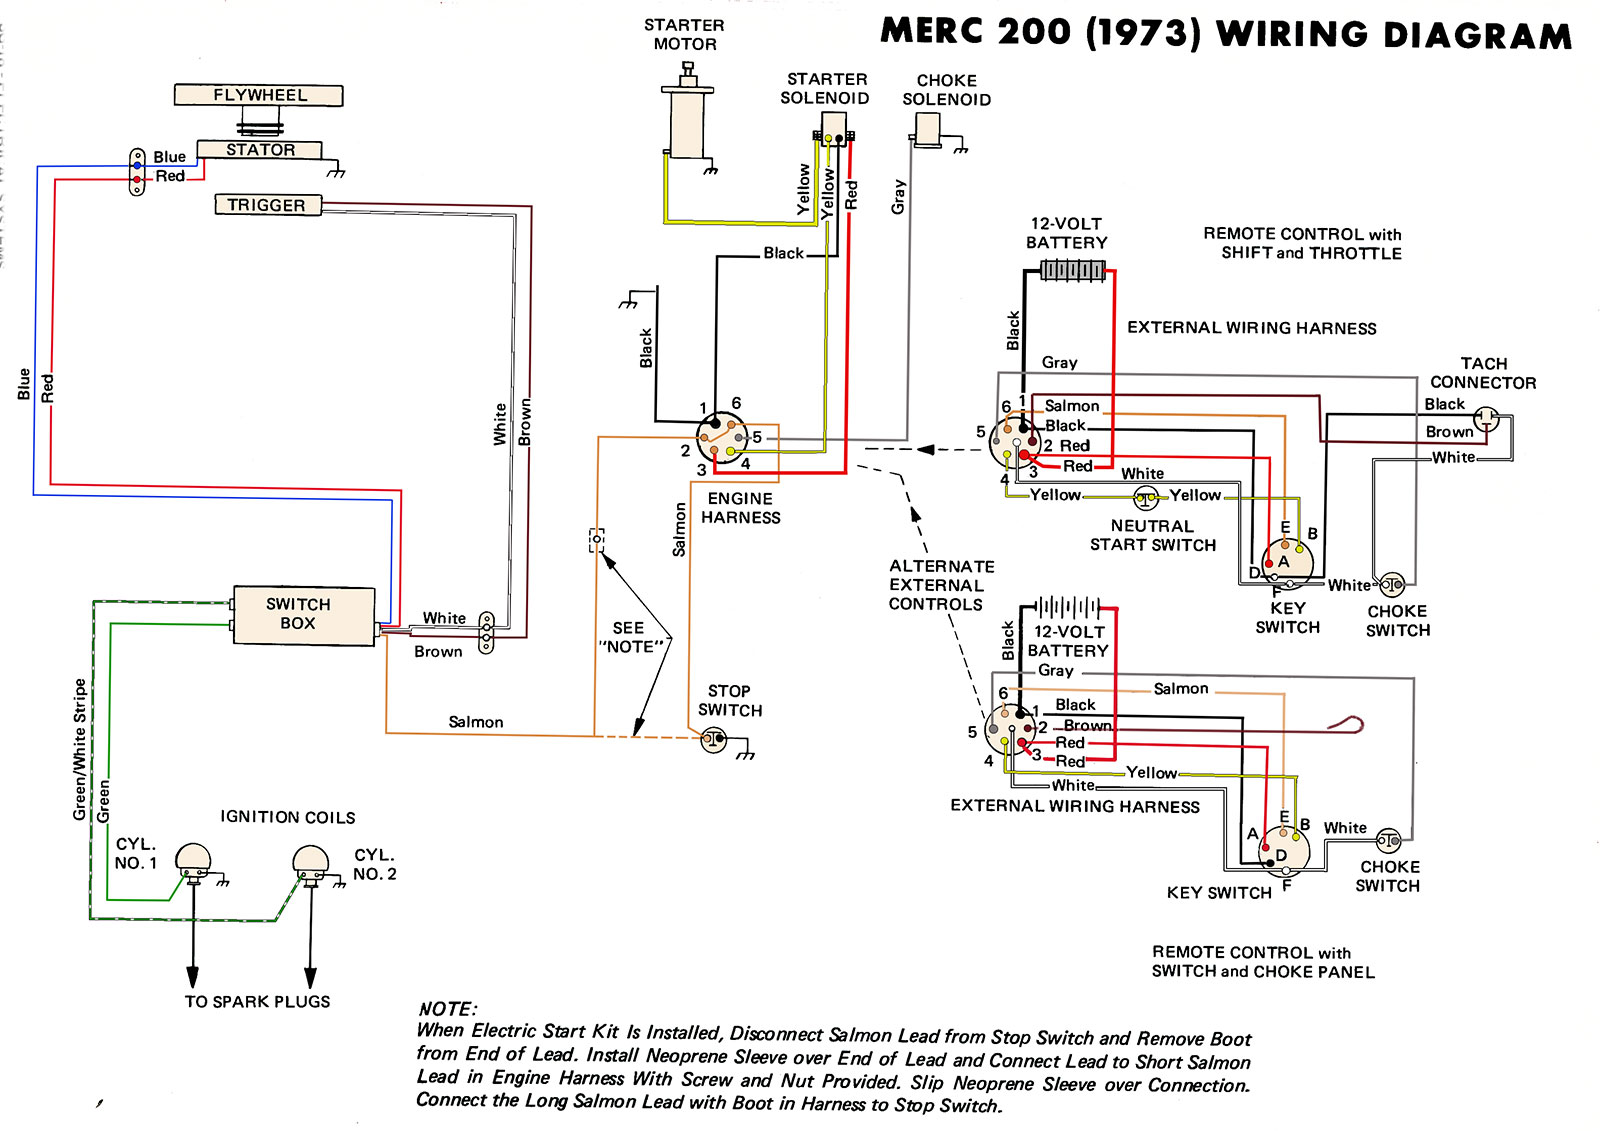 1969 Evinrude 5 Hp Wiring Diagram Schematic Gibson P 90 Pickup Wiring Diagram For Wiring Diagram Schematics